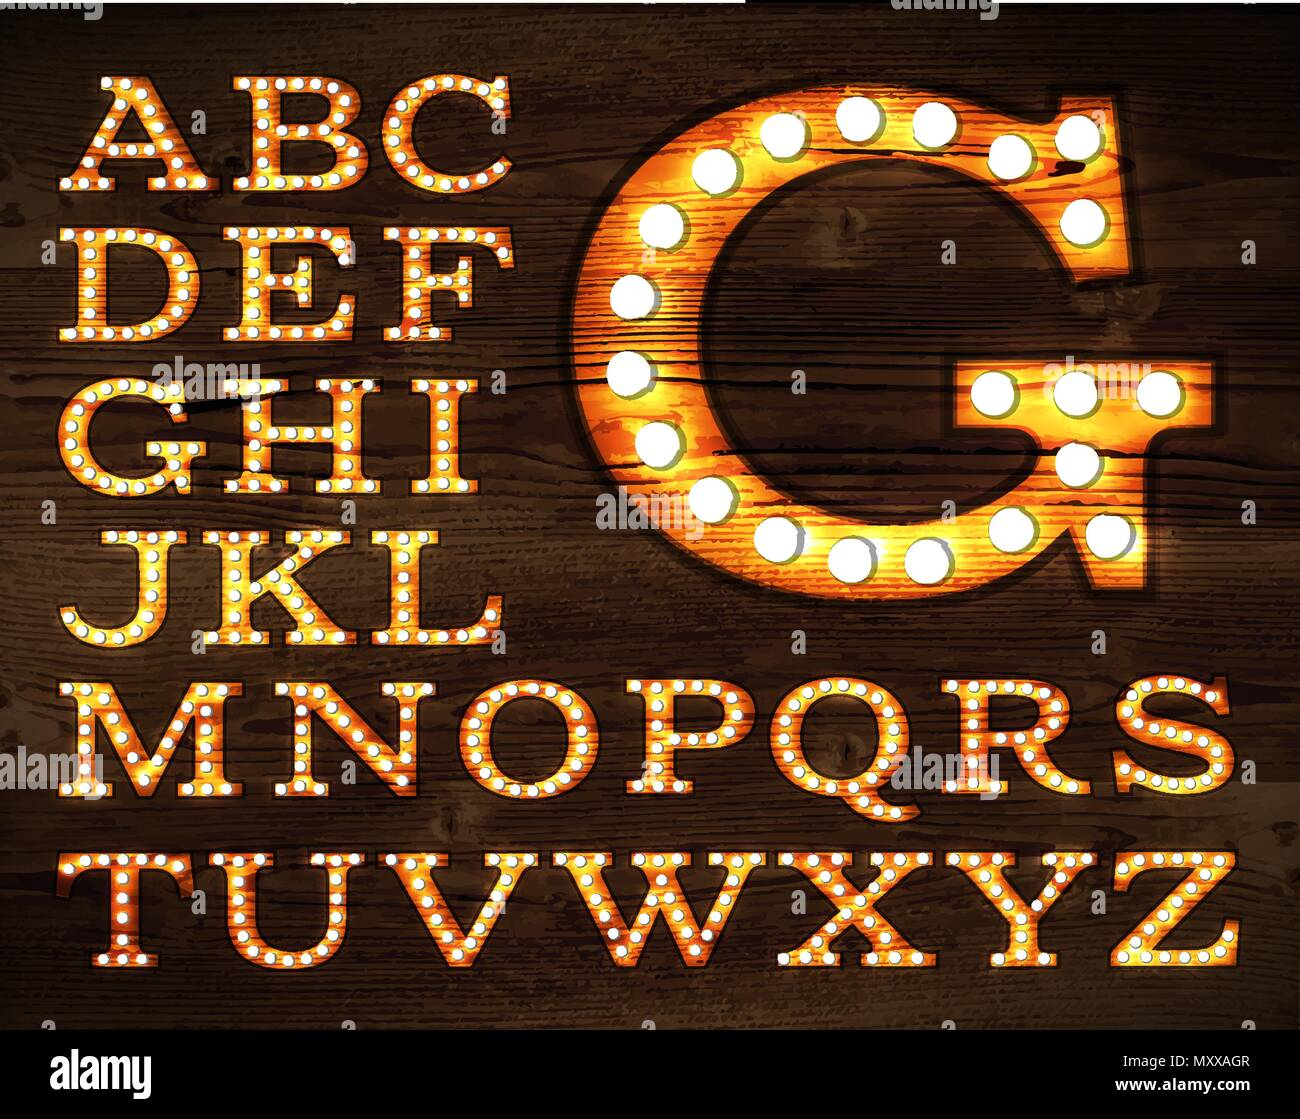 Vector of letters in retro style old lamp alphabet for light board on wood background. Stock Vector